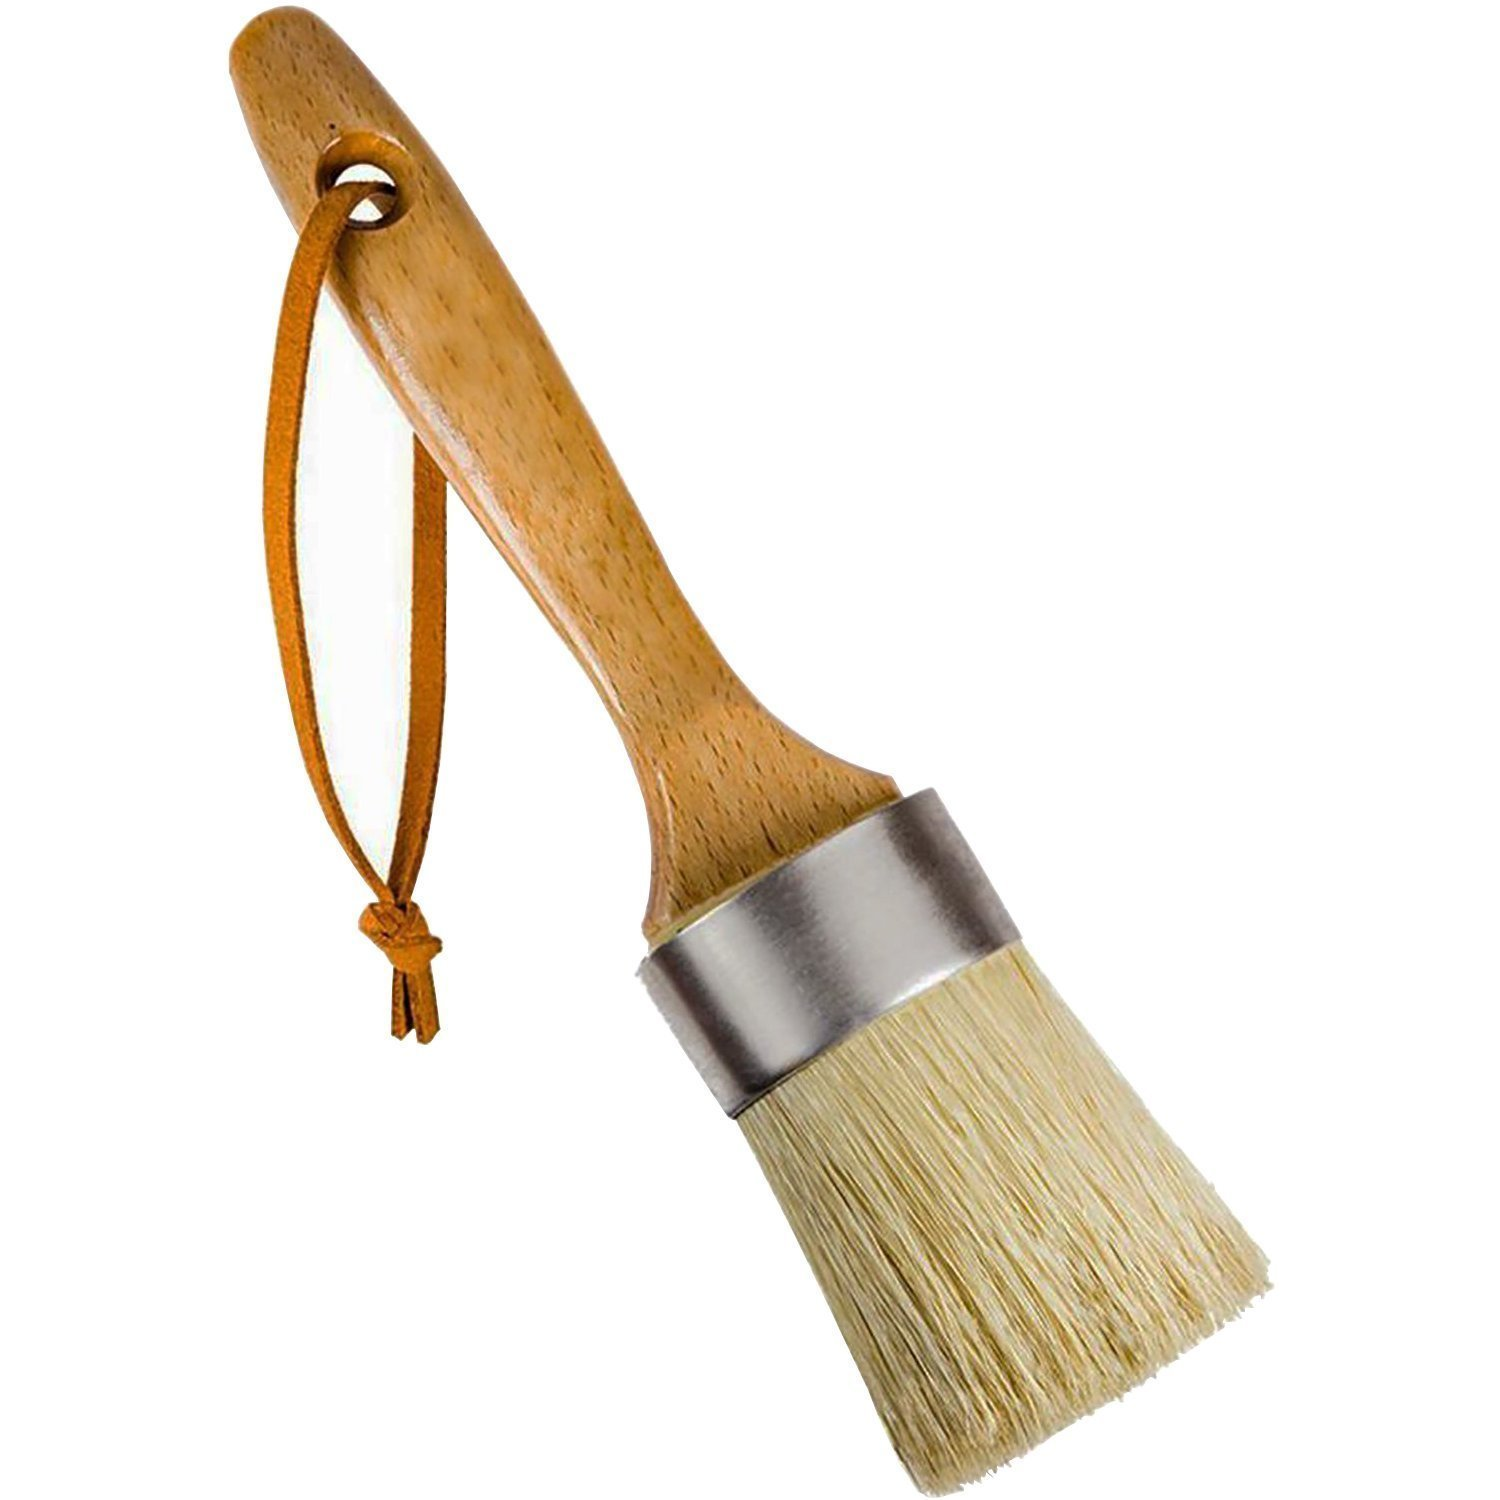 Paint and Wax Brush Tectri 40mm Synthetic Bristle Round Chalk with Natural Bristle and Wooden Handle for Furniture Home Decor Pastry taikeqi